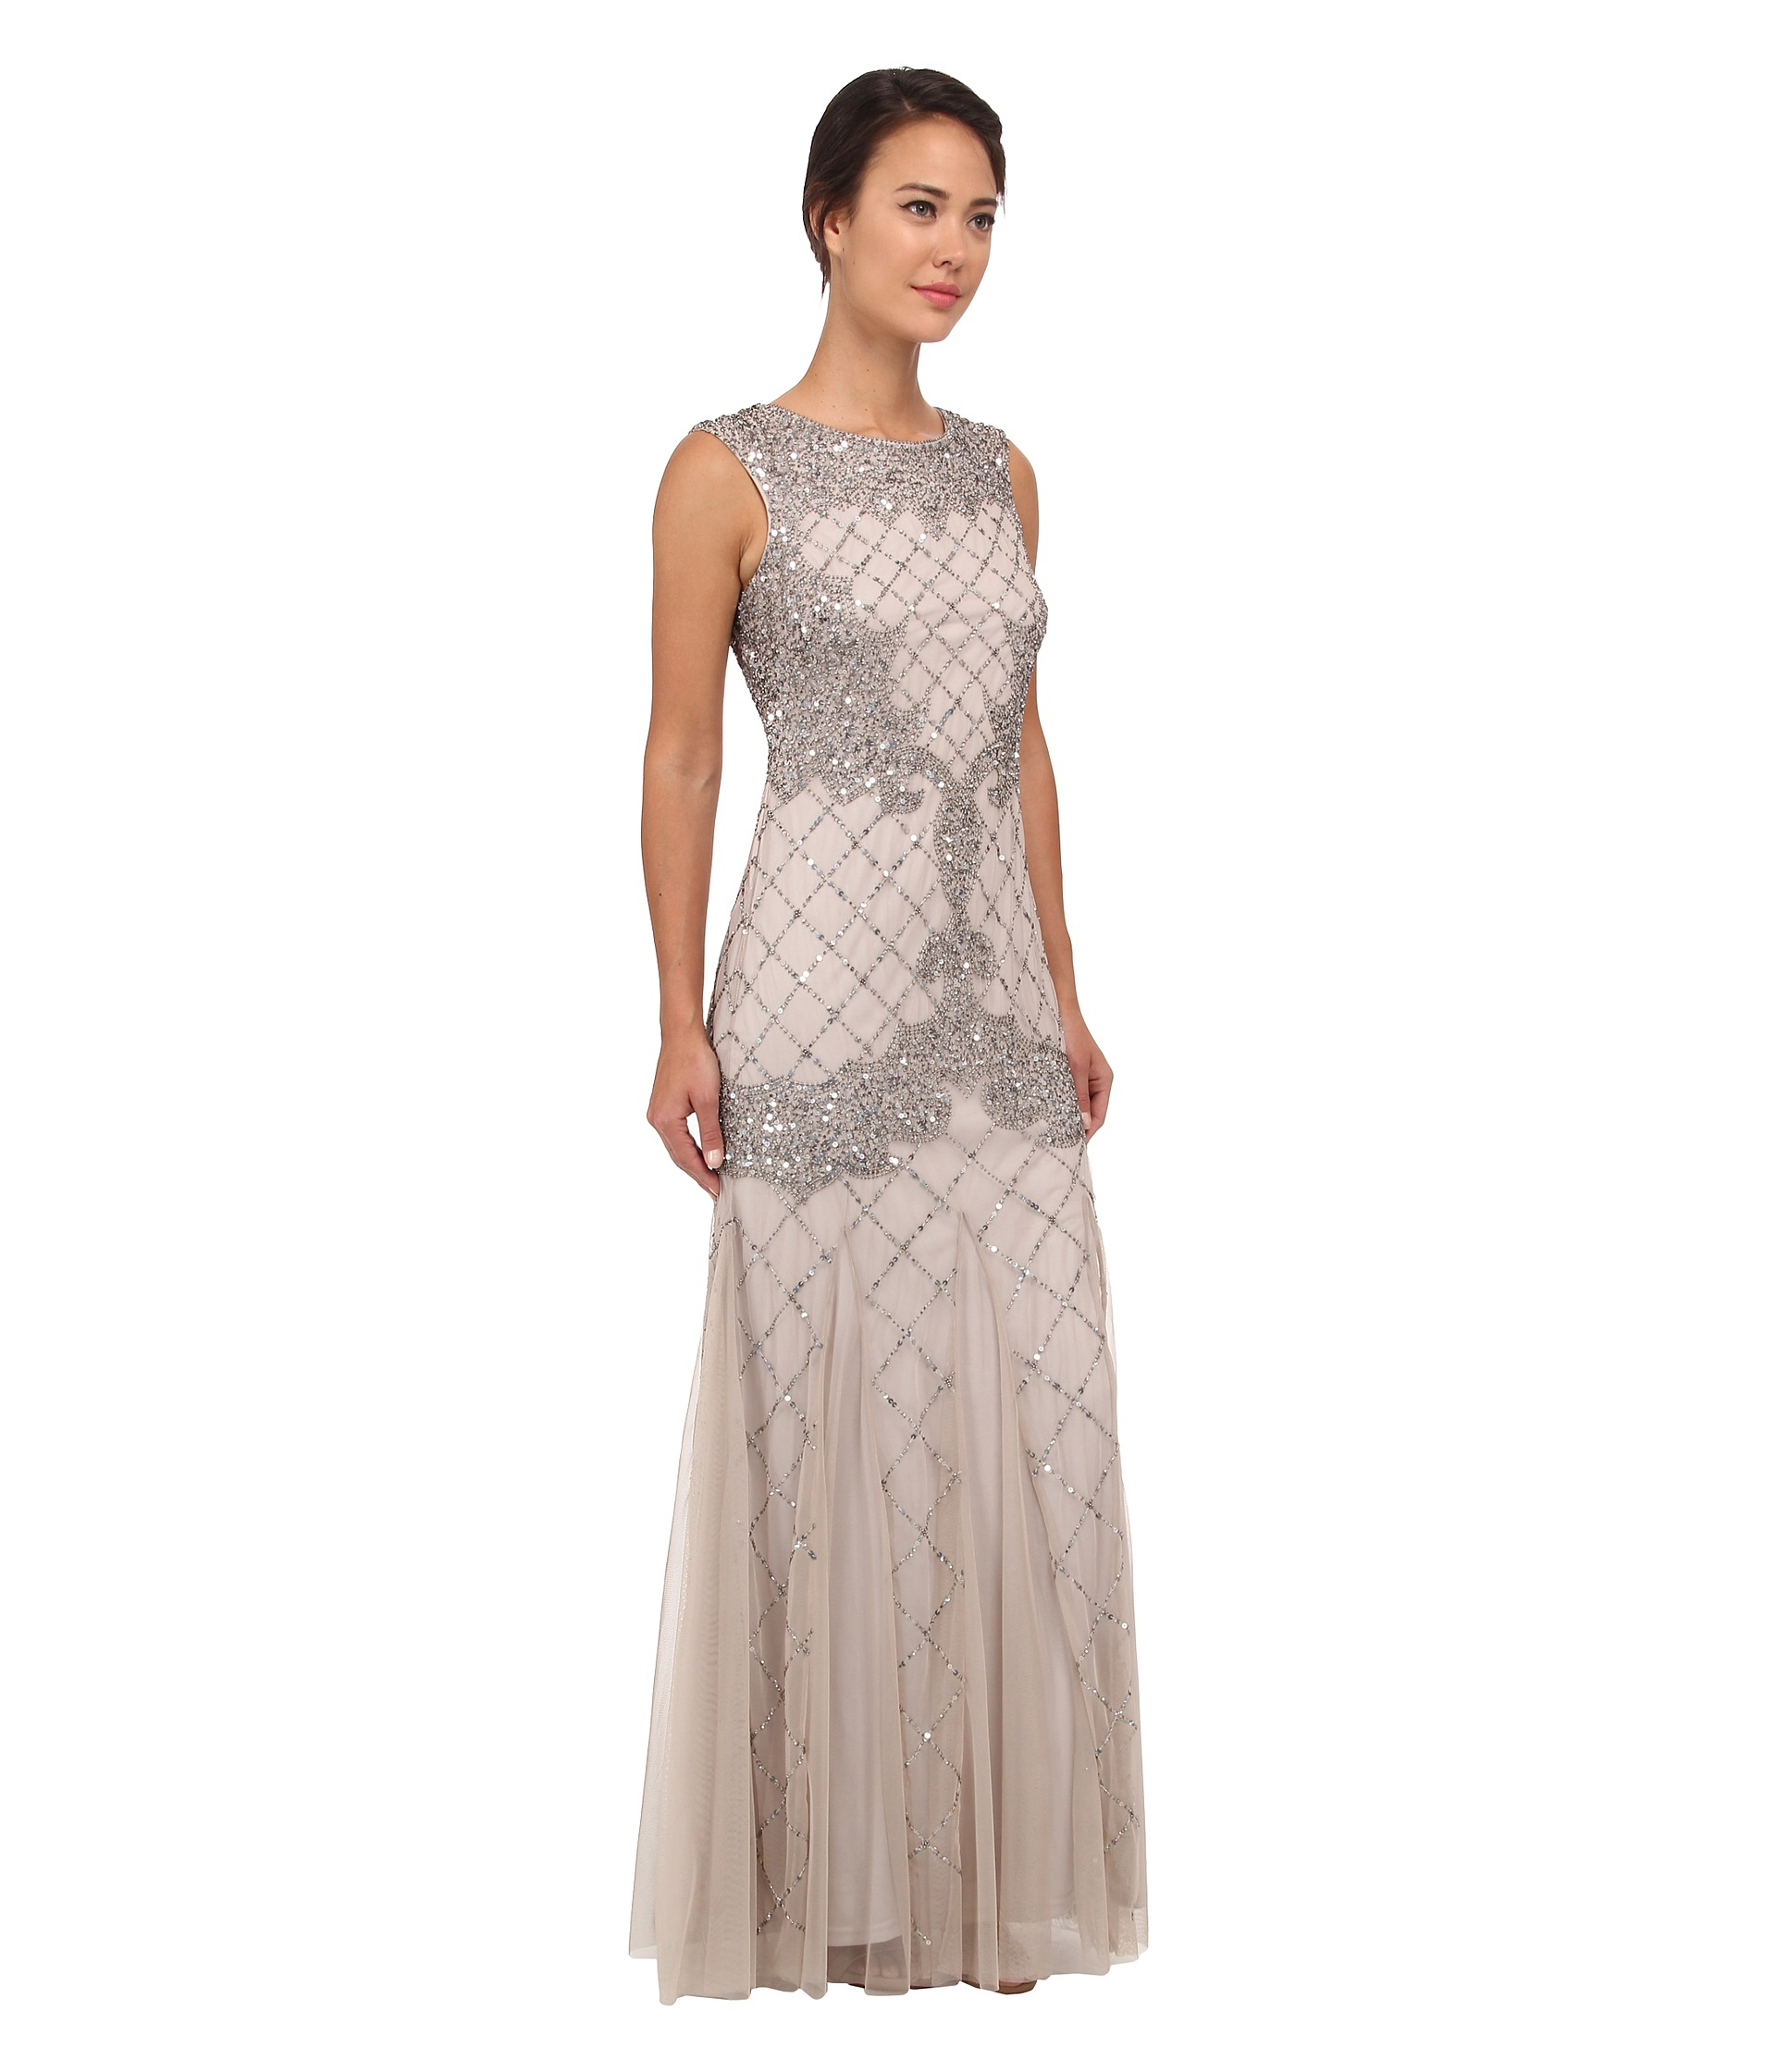 Lyst - Adrianna Papell Sleeveless Fully Beaded Gown in Metallic